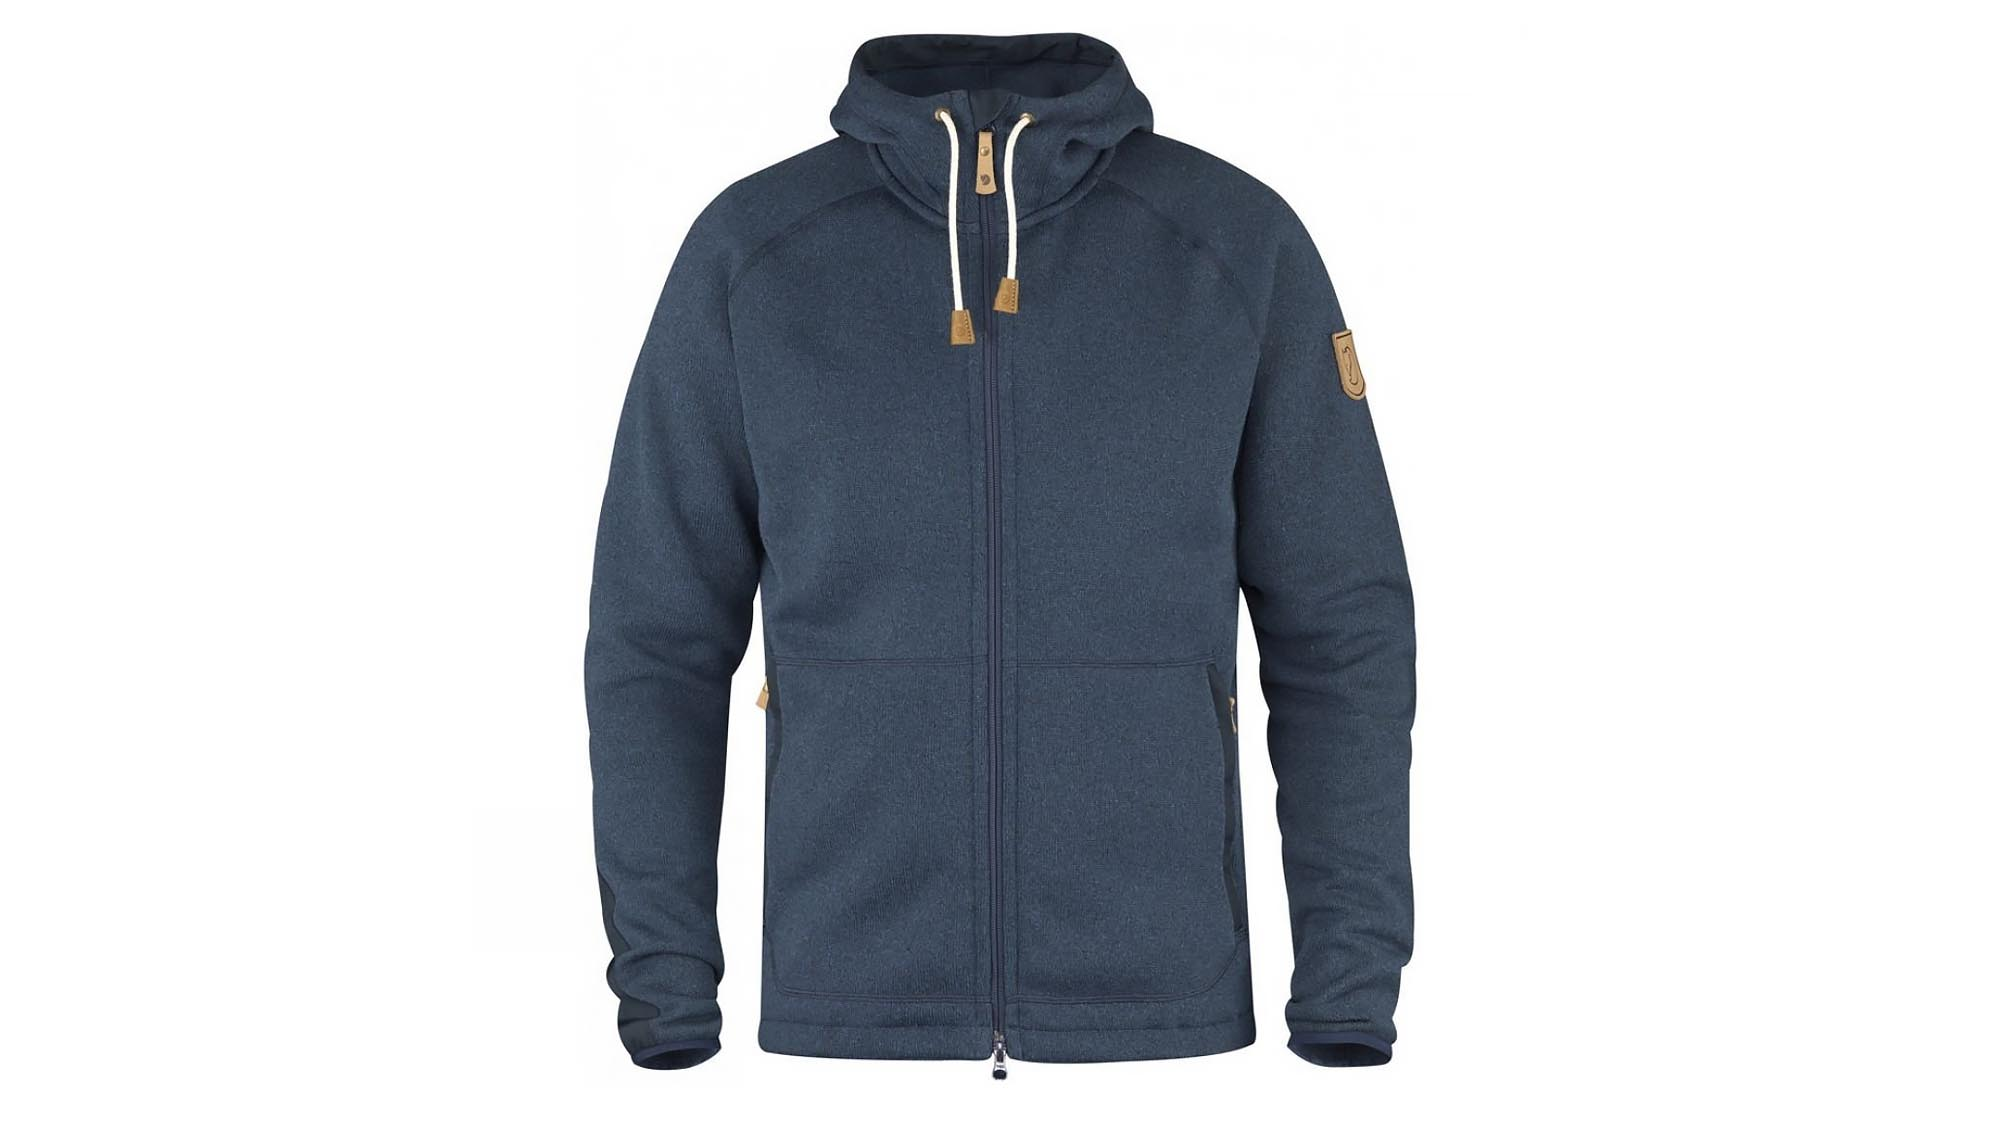 A high-quality fleece jacket is a very useful garment because it provides insulation and can be worn either as an outer layer (in dry weather) or as a mid-layer under a shell layer (in rainy weather). Fleece jackets are very comfortable, quick-drying, moisture-wicking and breathable.